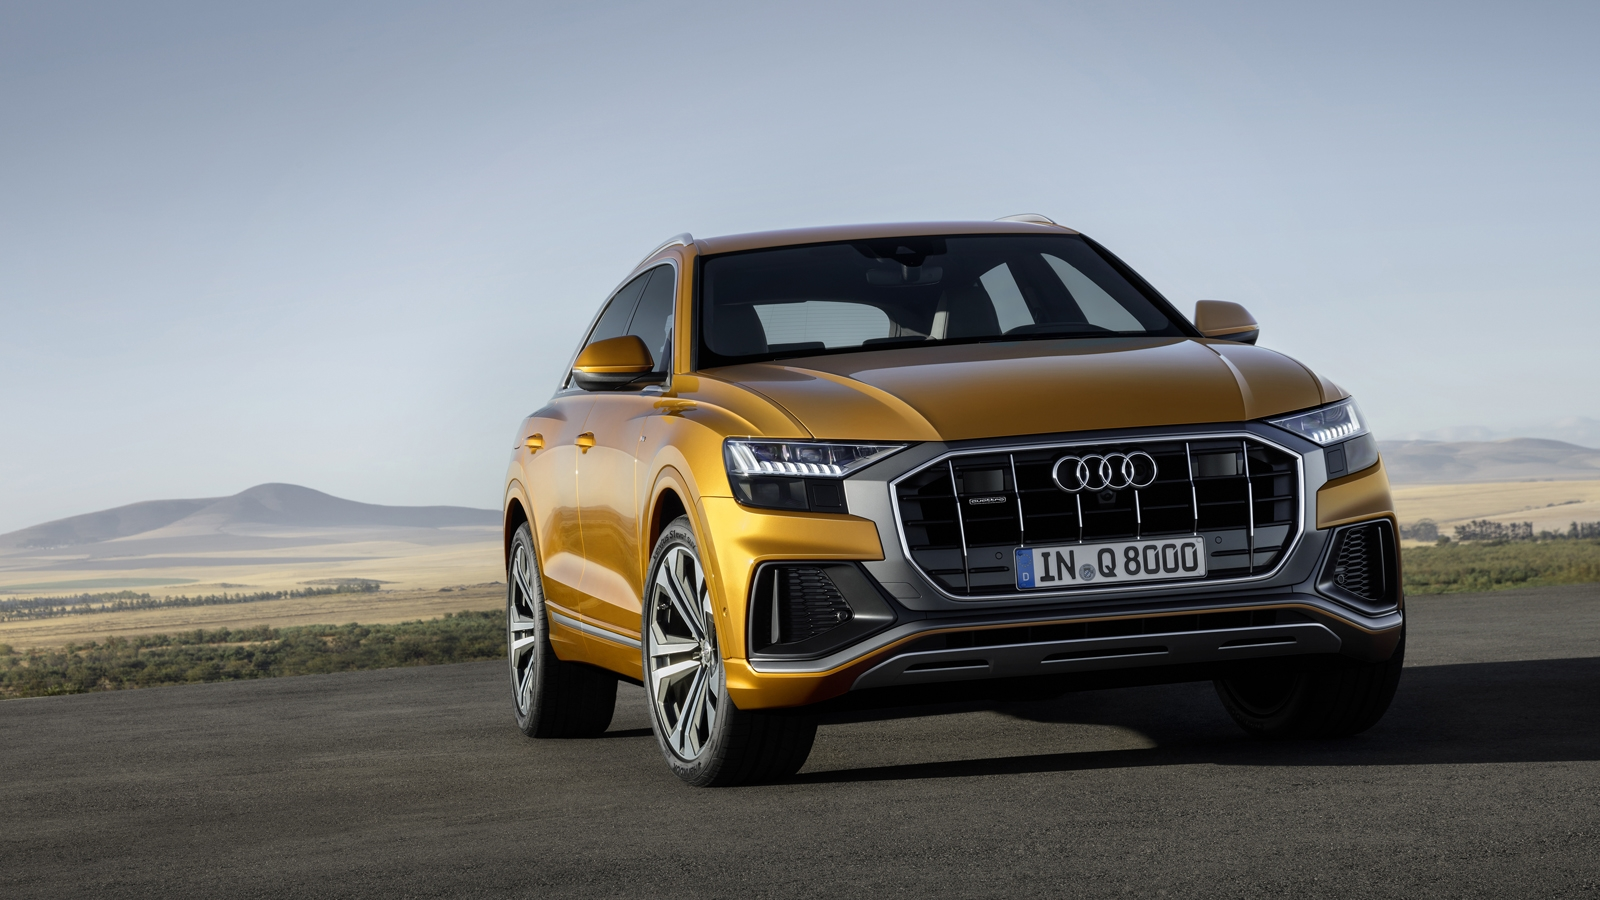 48v Mild Hybrid >> 2019 Audi Q8 Debuts With 48V Mild Hybrid V6, All-Wheel Steering » AutoGuide.com News